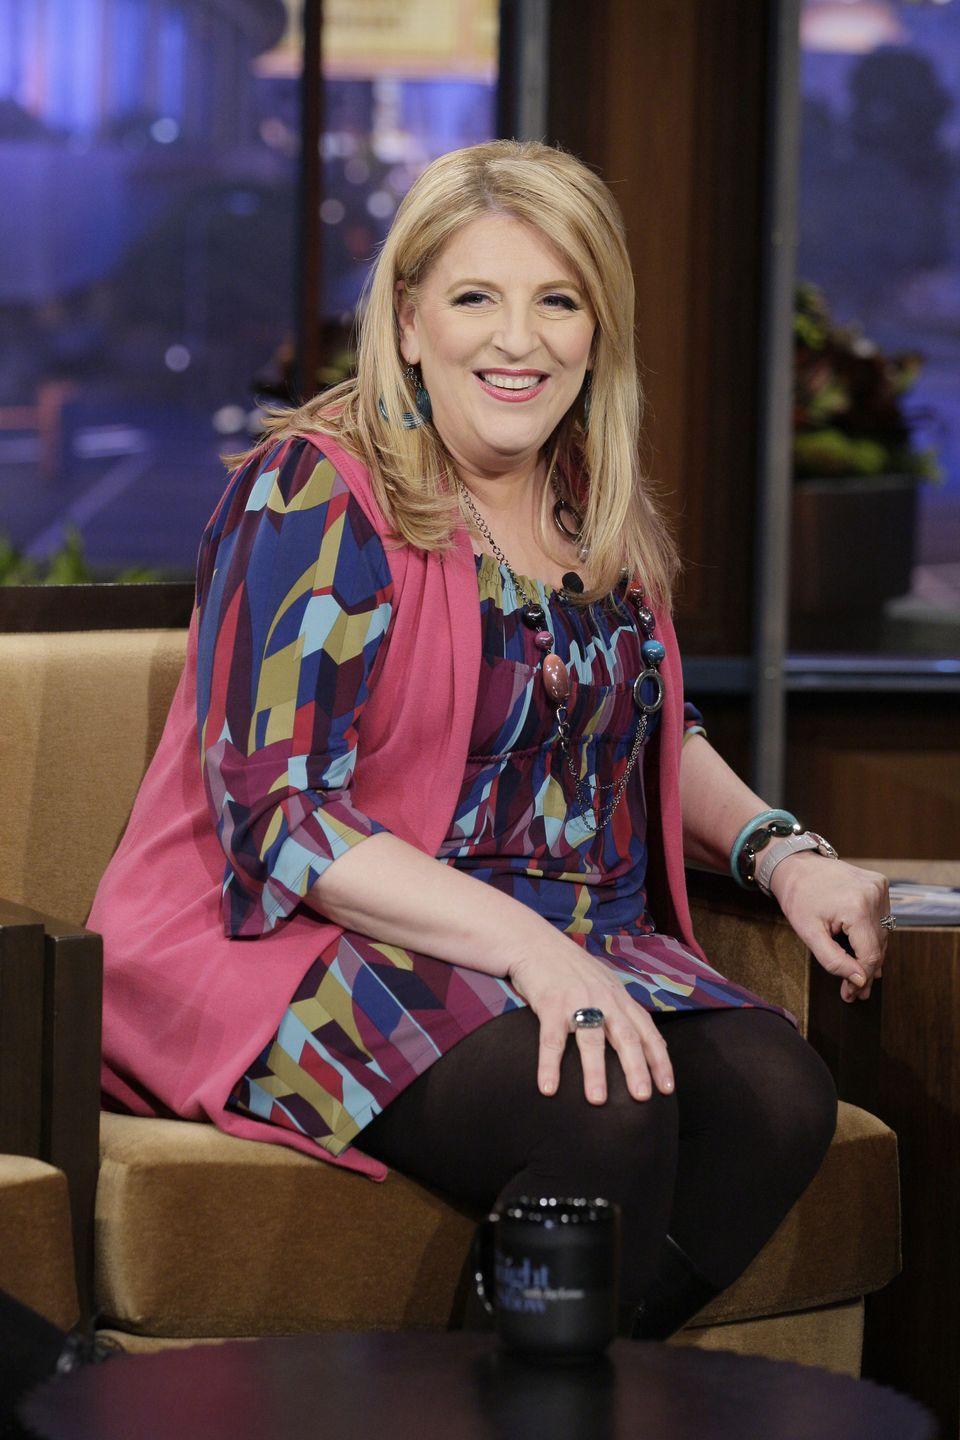 """<p>The woman who can famously make a joke out of everything (even herself) revealed on <a href=""""http://www.doctoroz.com/videos/how-lisa-lampanelli-lost-80-pounds-pt-1"""" rel=""""nofollow noopener"""" target=""""_blank"""" data-ylk=""""slk:The Doctor Oz Show"""" class=""""link rapid-noclick-resp""""><em>The Doctor Oz Show</em></a> in 2012 that, off-stage, the subject of her weight wasn't something she could laugh at. Years of <a href=""""http://www.womenshealthmag.com/weight-loss/why-do-women-overeat"""" rel=""""nofollow noopener"""" target=""""_blank"""" data-ylk=""""slk:emotional eating"""" class=""""link rapid-noclick-resp"""">emotional eating</a> and attempts at losing weight—even buying a house on a health spa property in hopes it would help—led Lisa Lampanelli to opt for gastric bypass surgery in 2012.</p>"""